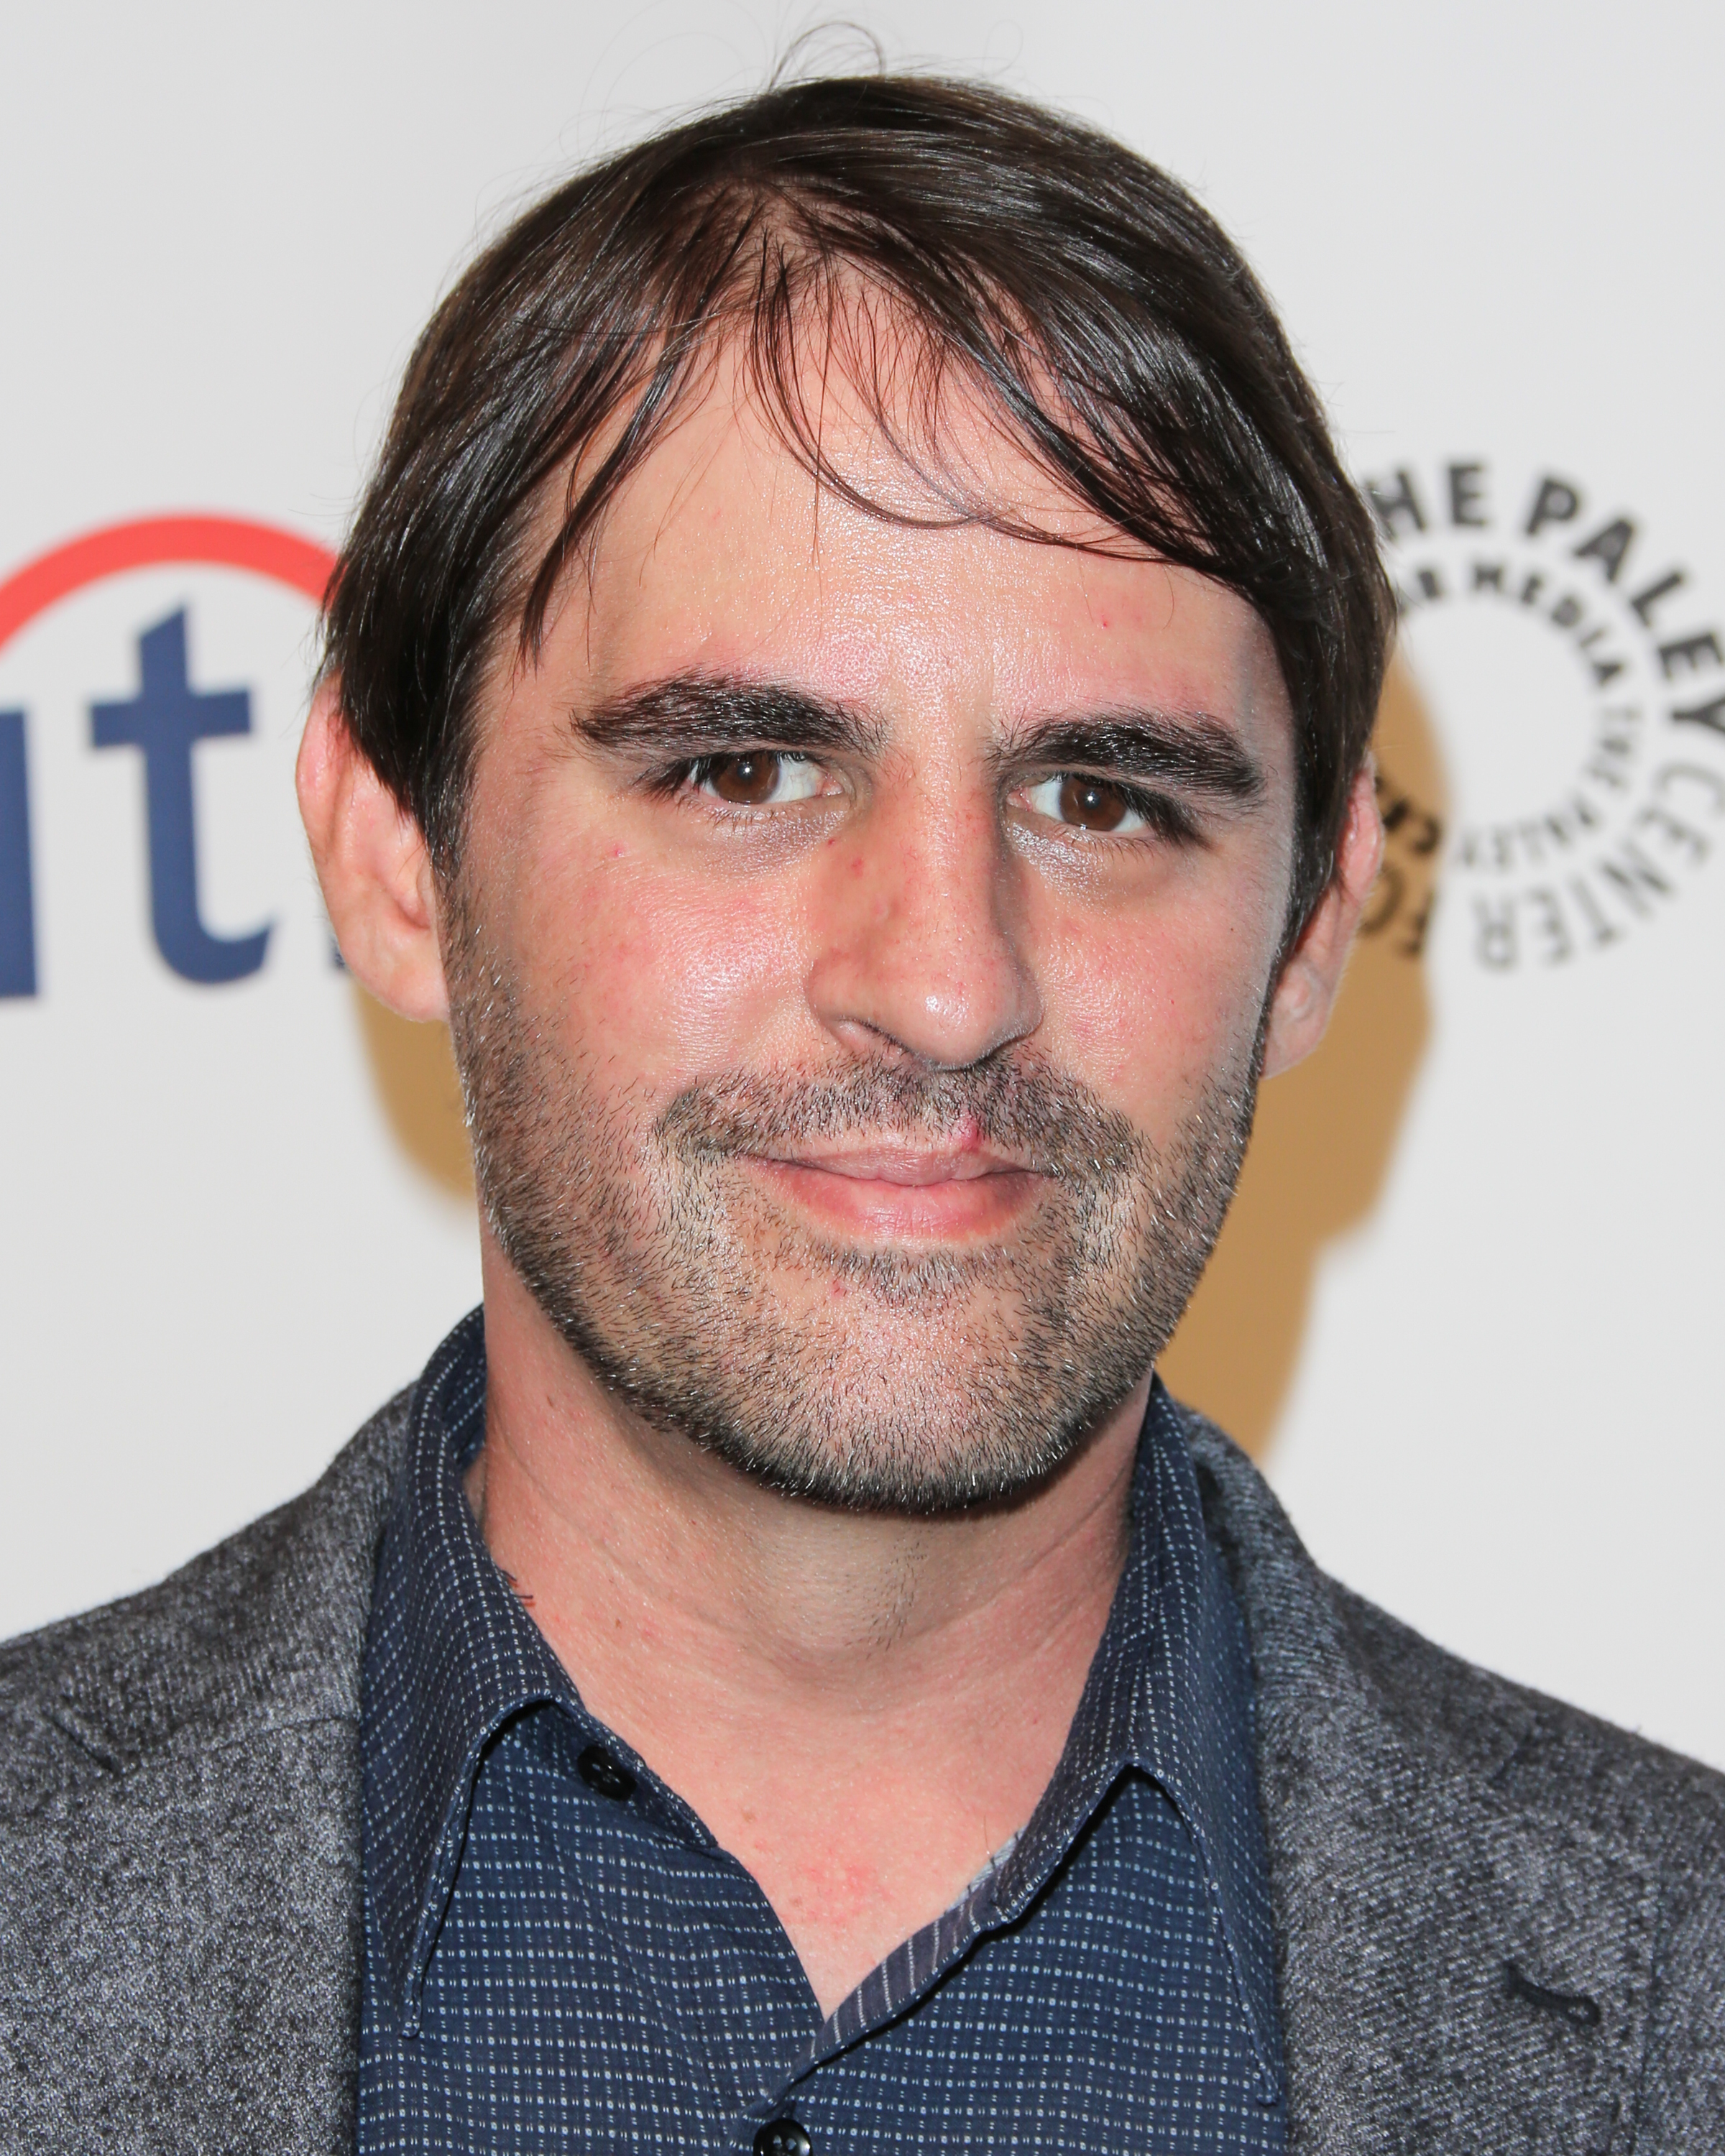 Roberto Orci attends the 2014 PaleyFest presentaion of  Sleepy Hollow  at Dolby Theatre on March 19, 2014 in Hollywood.